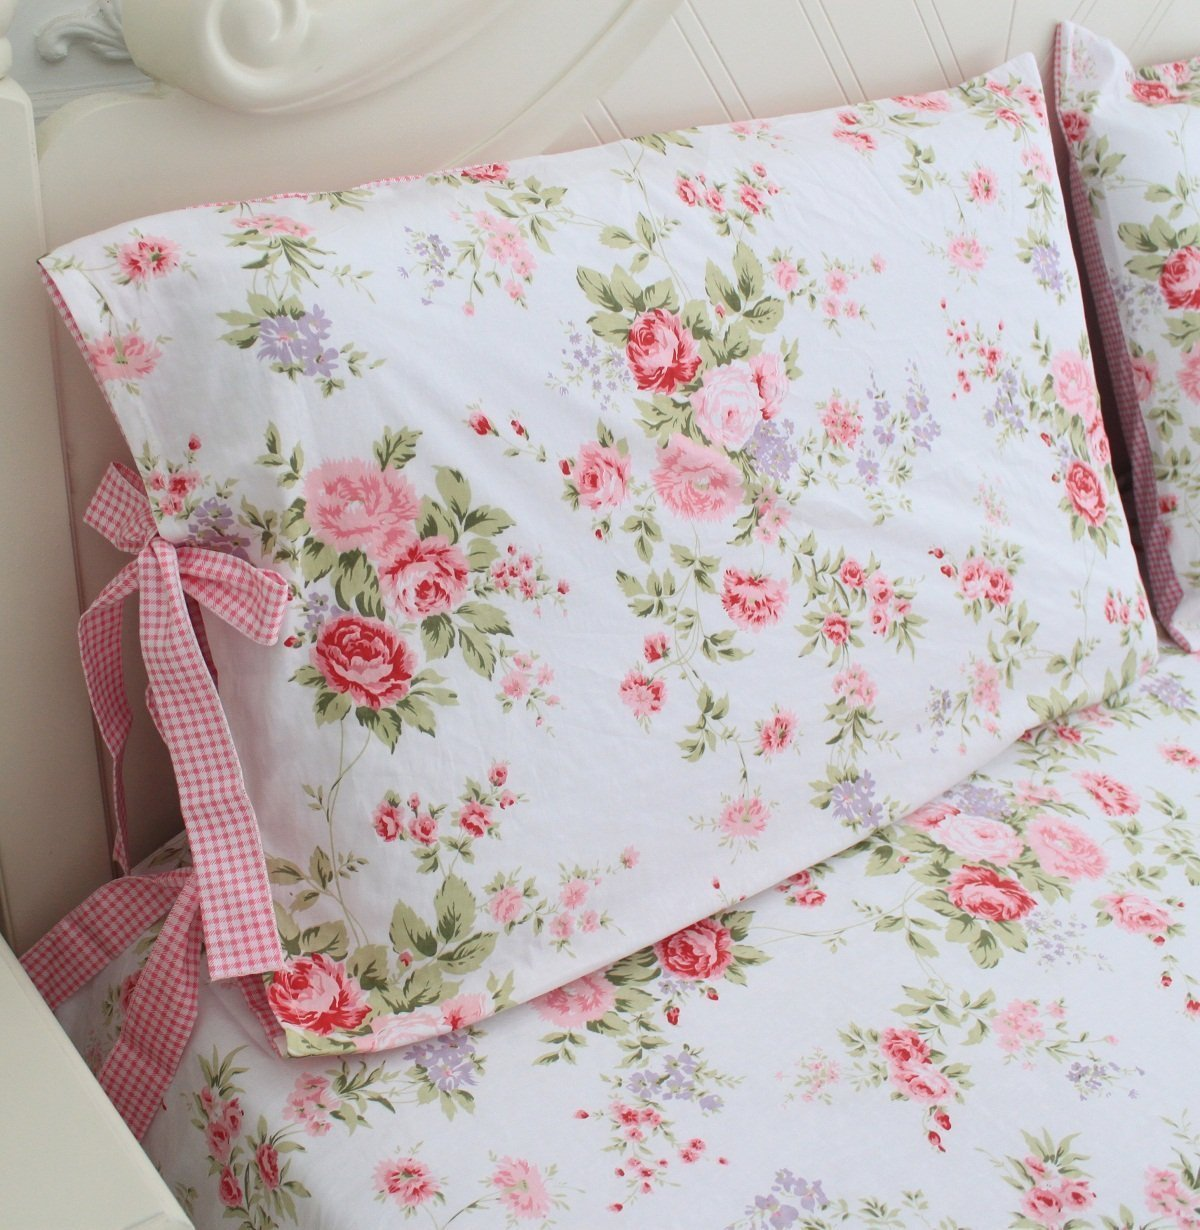 FADFAY Cotton Decorative Pillowcase Cotton Rose Floral Print Pattern Pillow Covers, 2 Pcs(Pink)